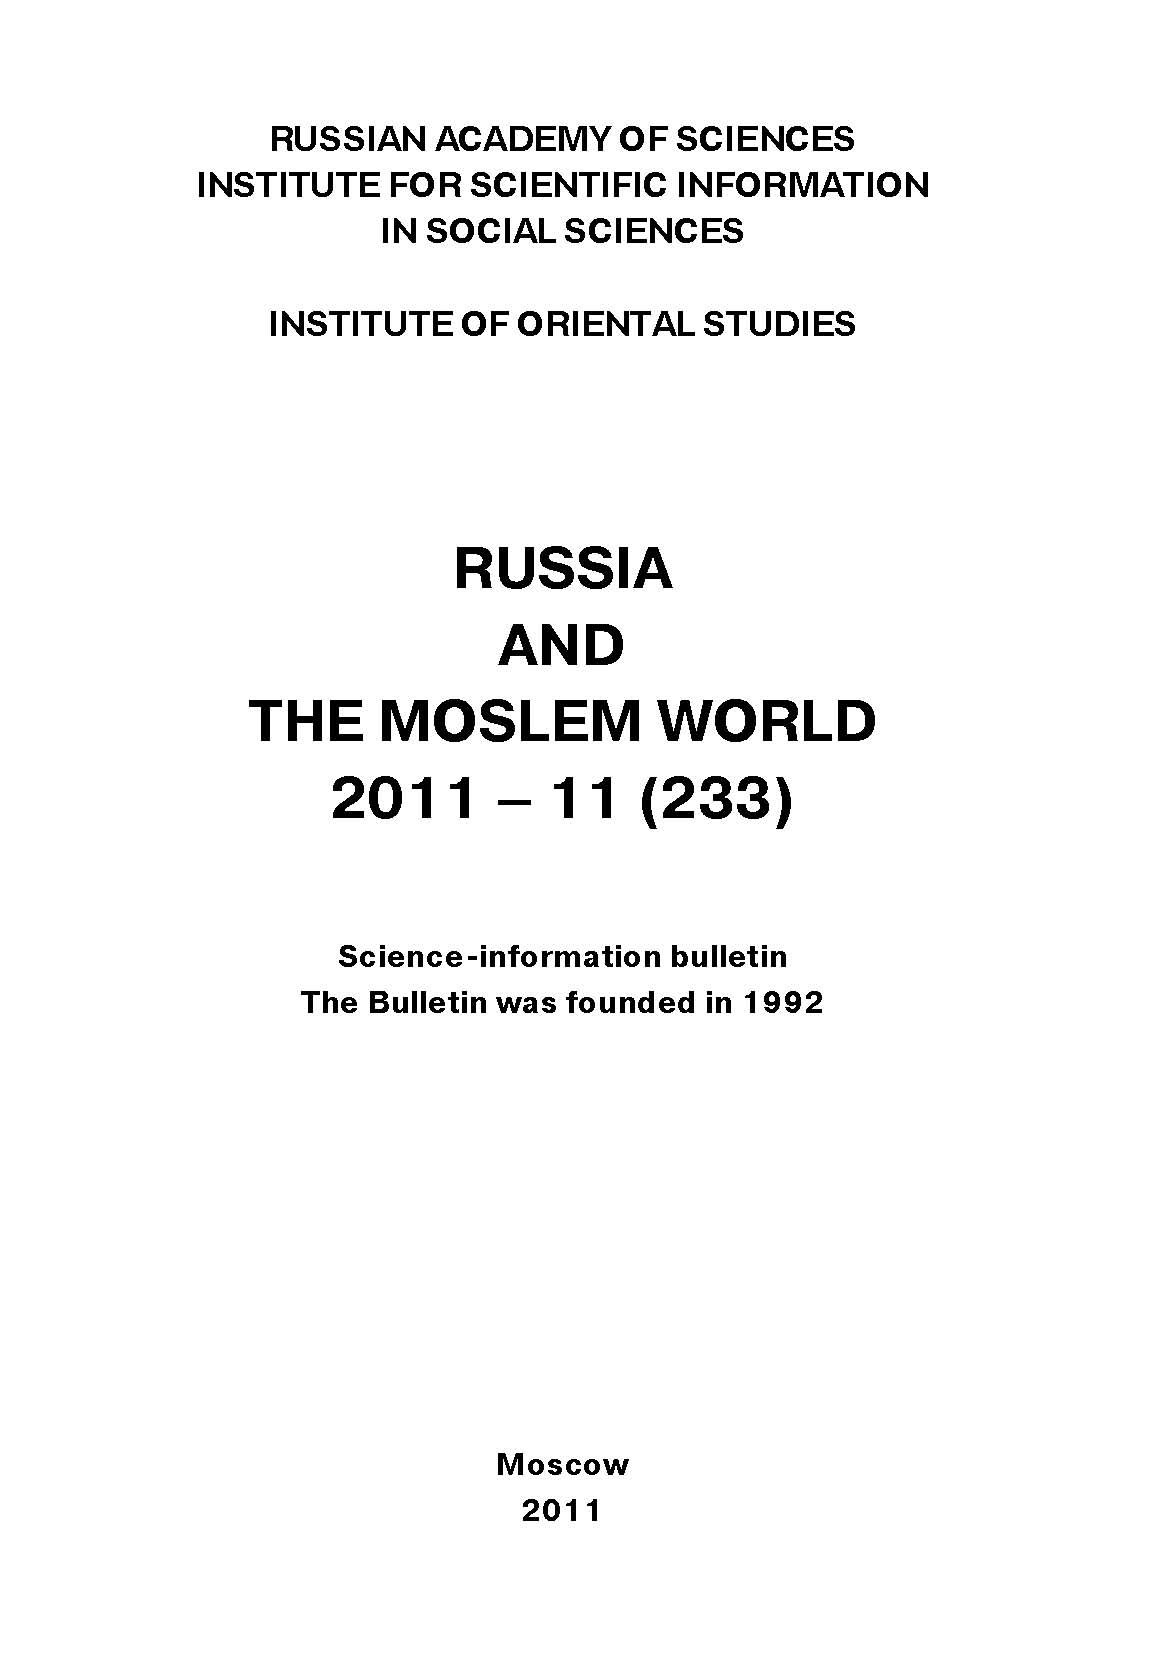 Сборник статей Russia and the Moslem World № 11 / 2011 сборник статей russia and the moslem world 04 2011